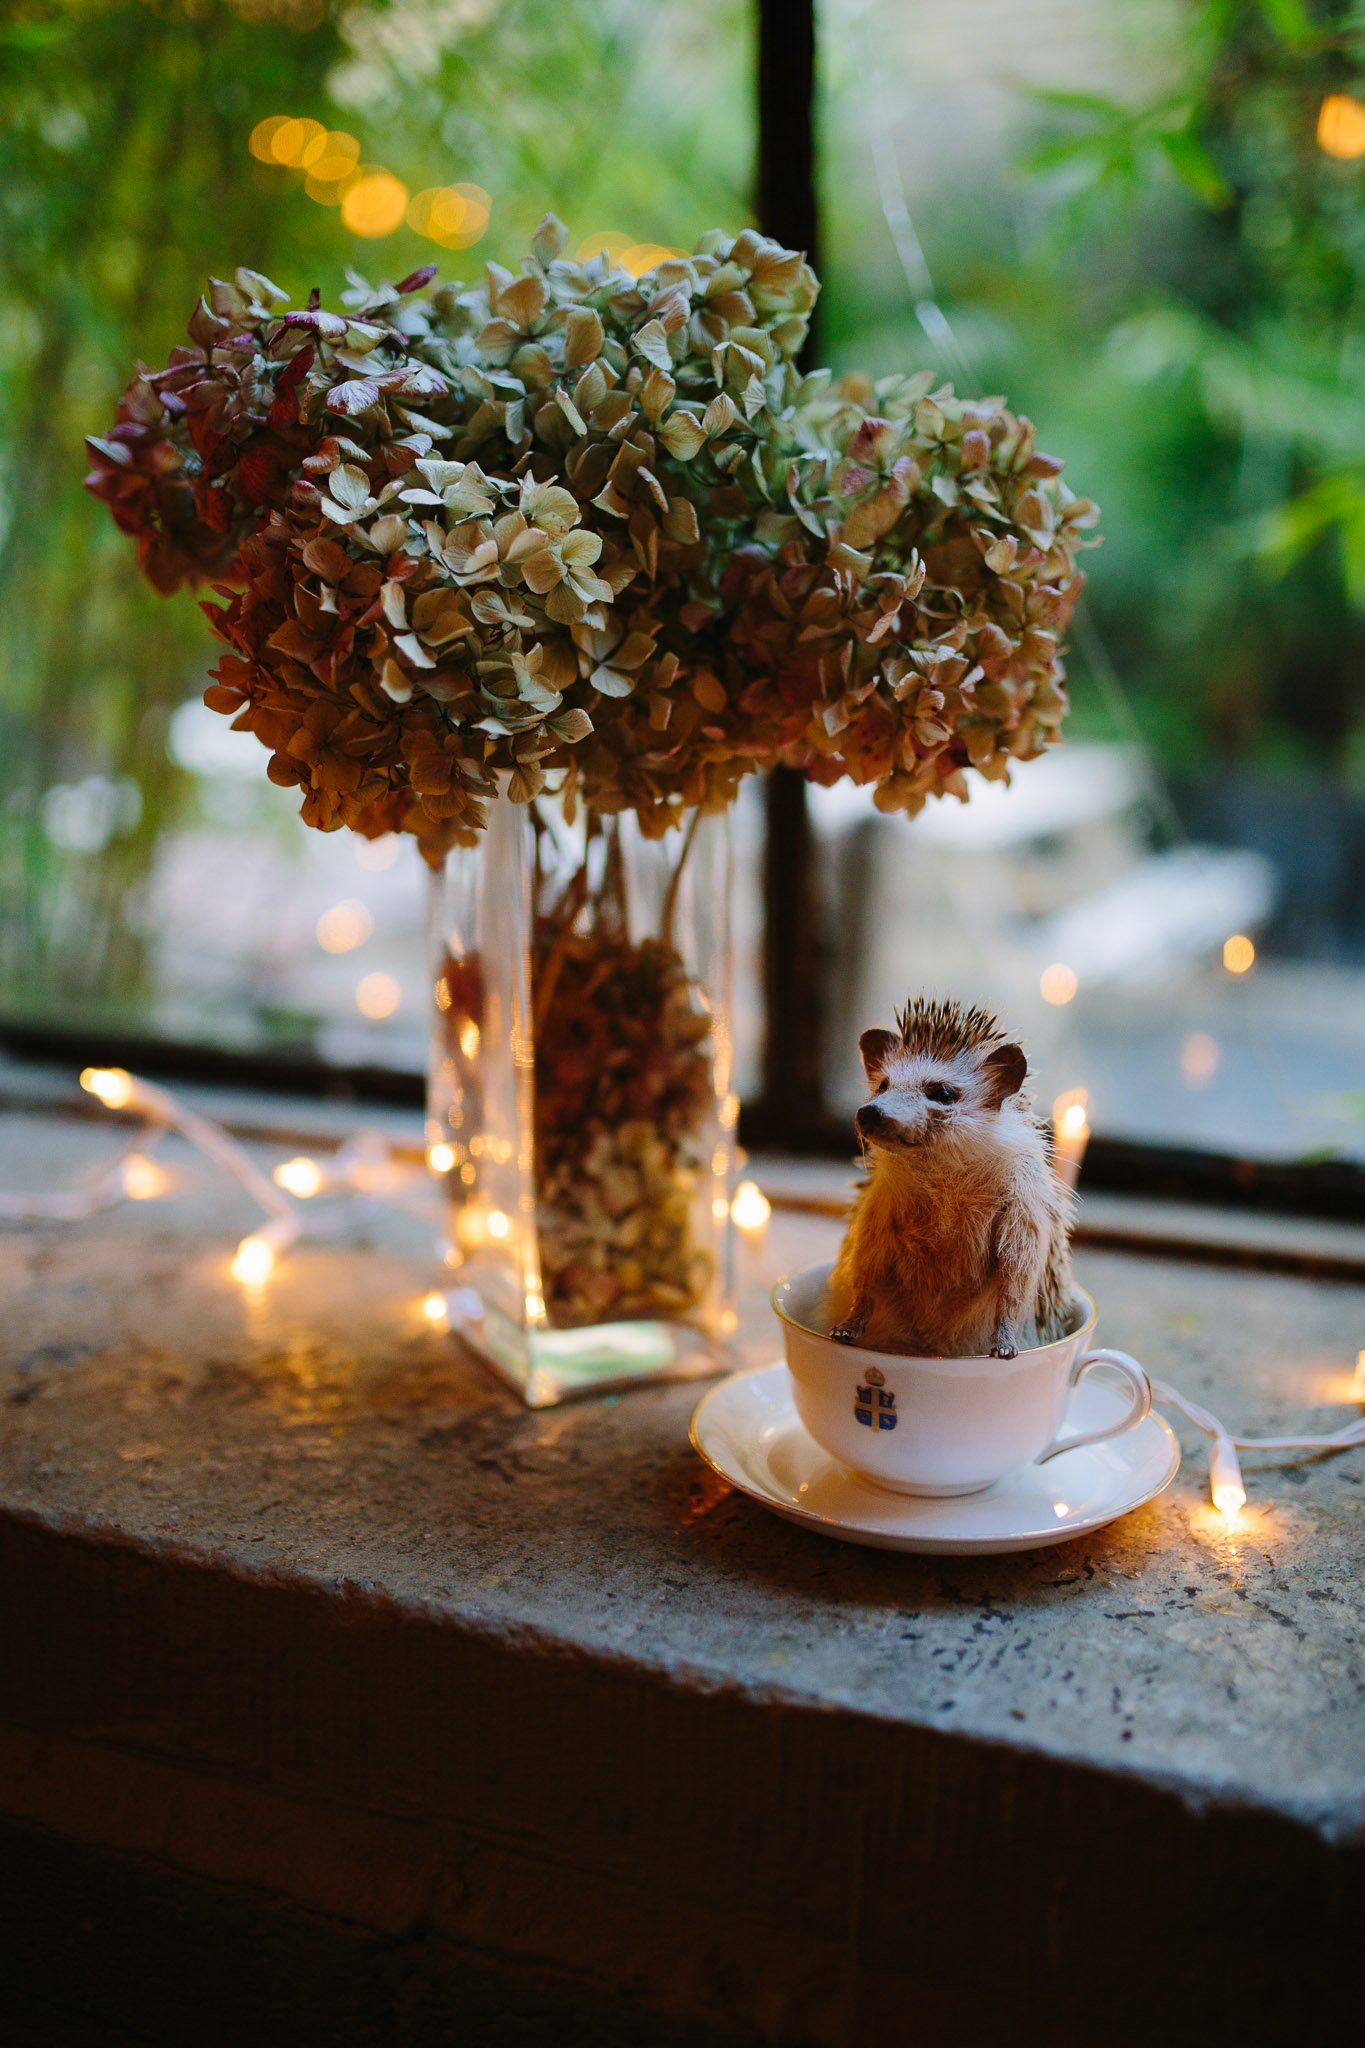 Stuffed Hedgehog in a teacup